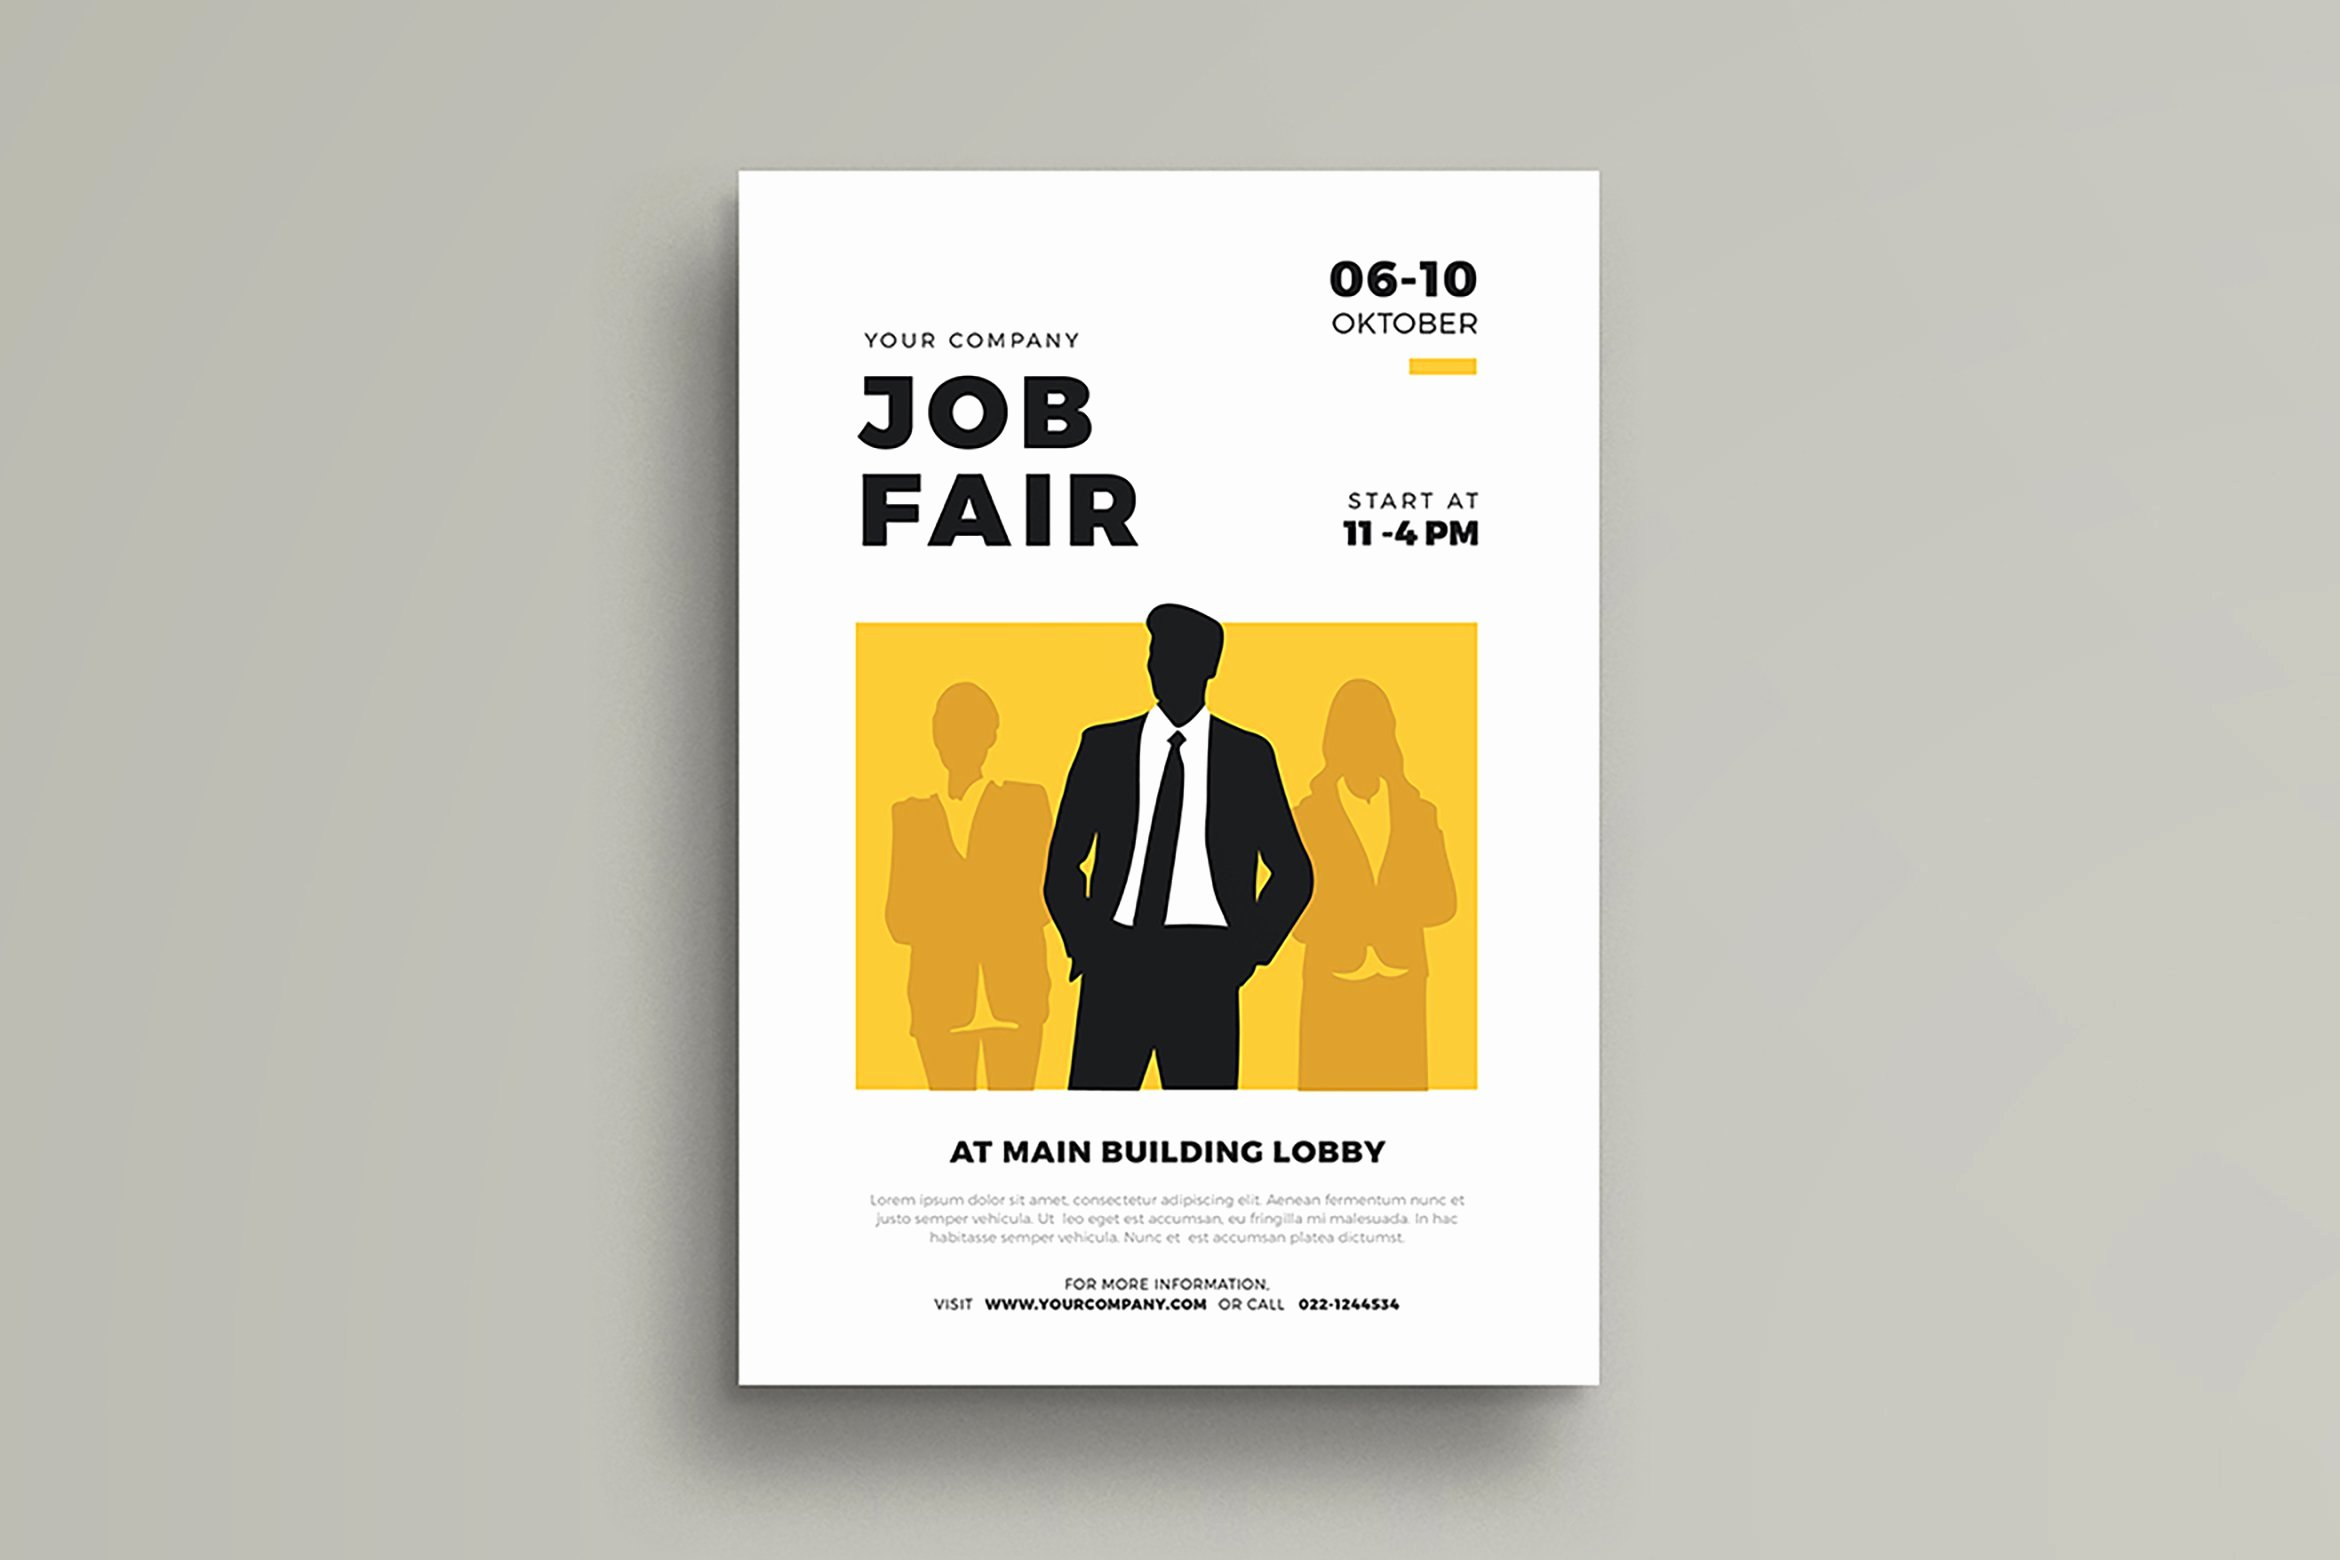 Job Fair Flyer Template Free Luxury Job Fair Flyer Template Flyer Templates Creative Market